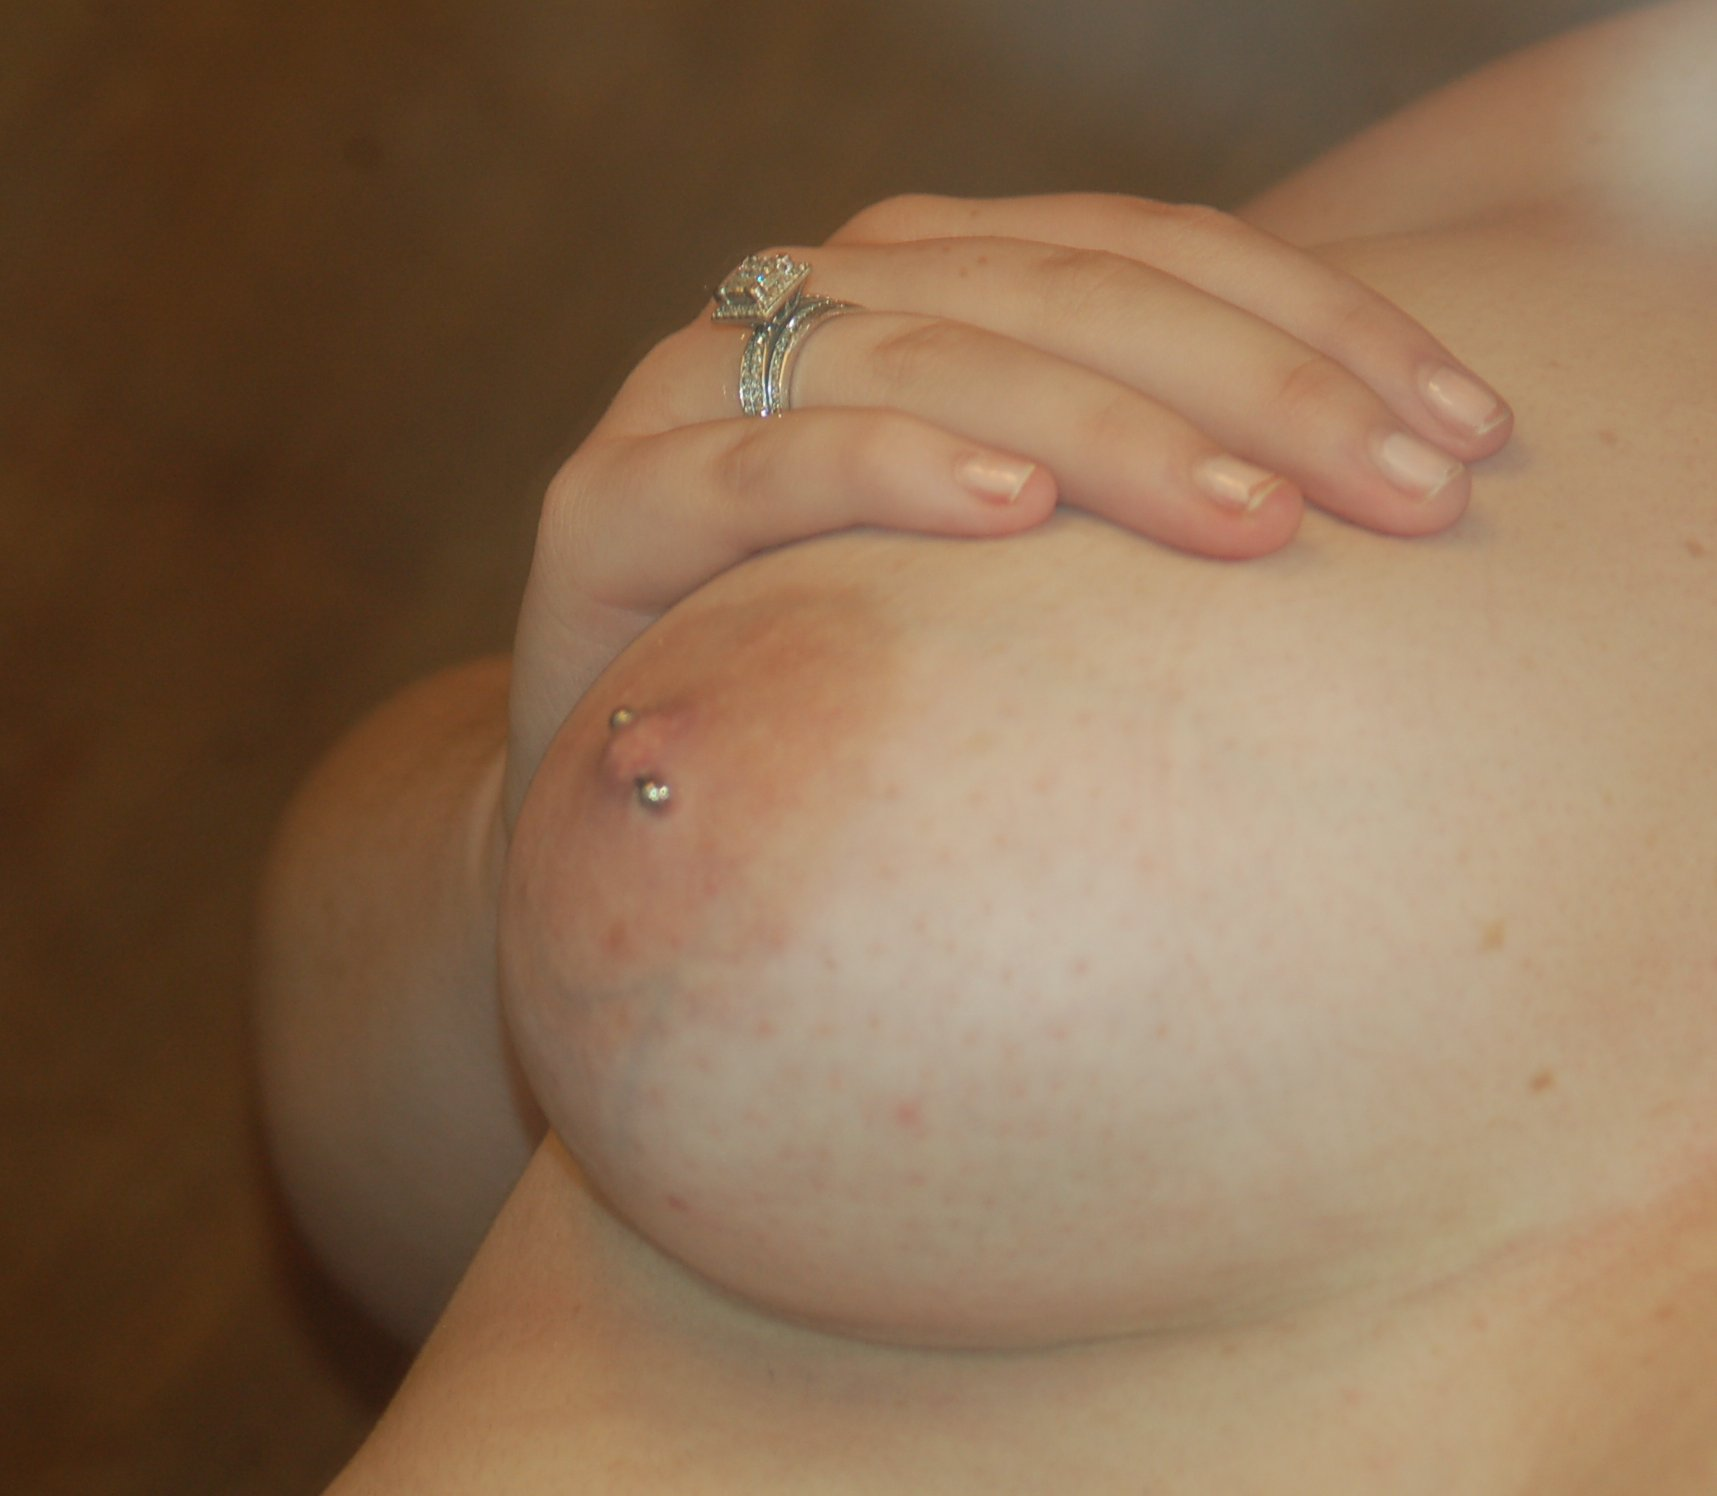 Nipple Rings Girls Pic